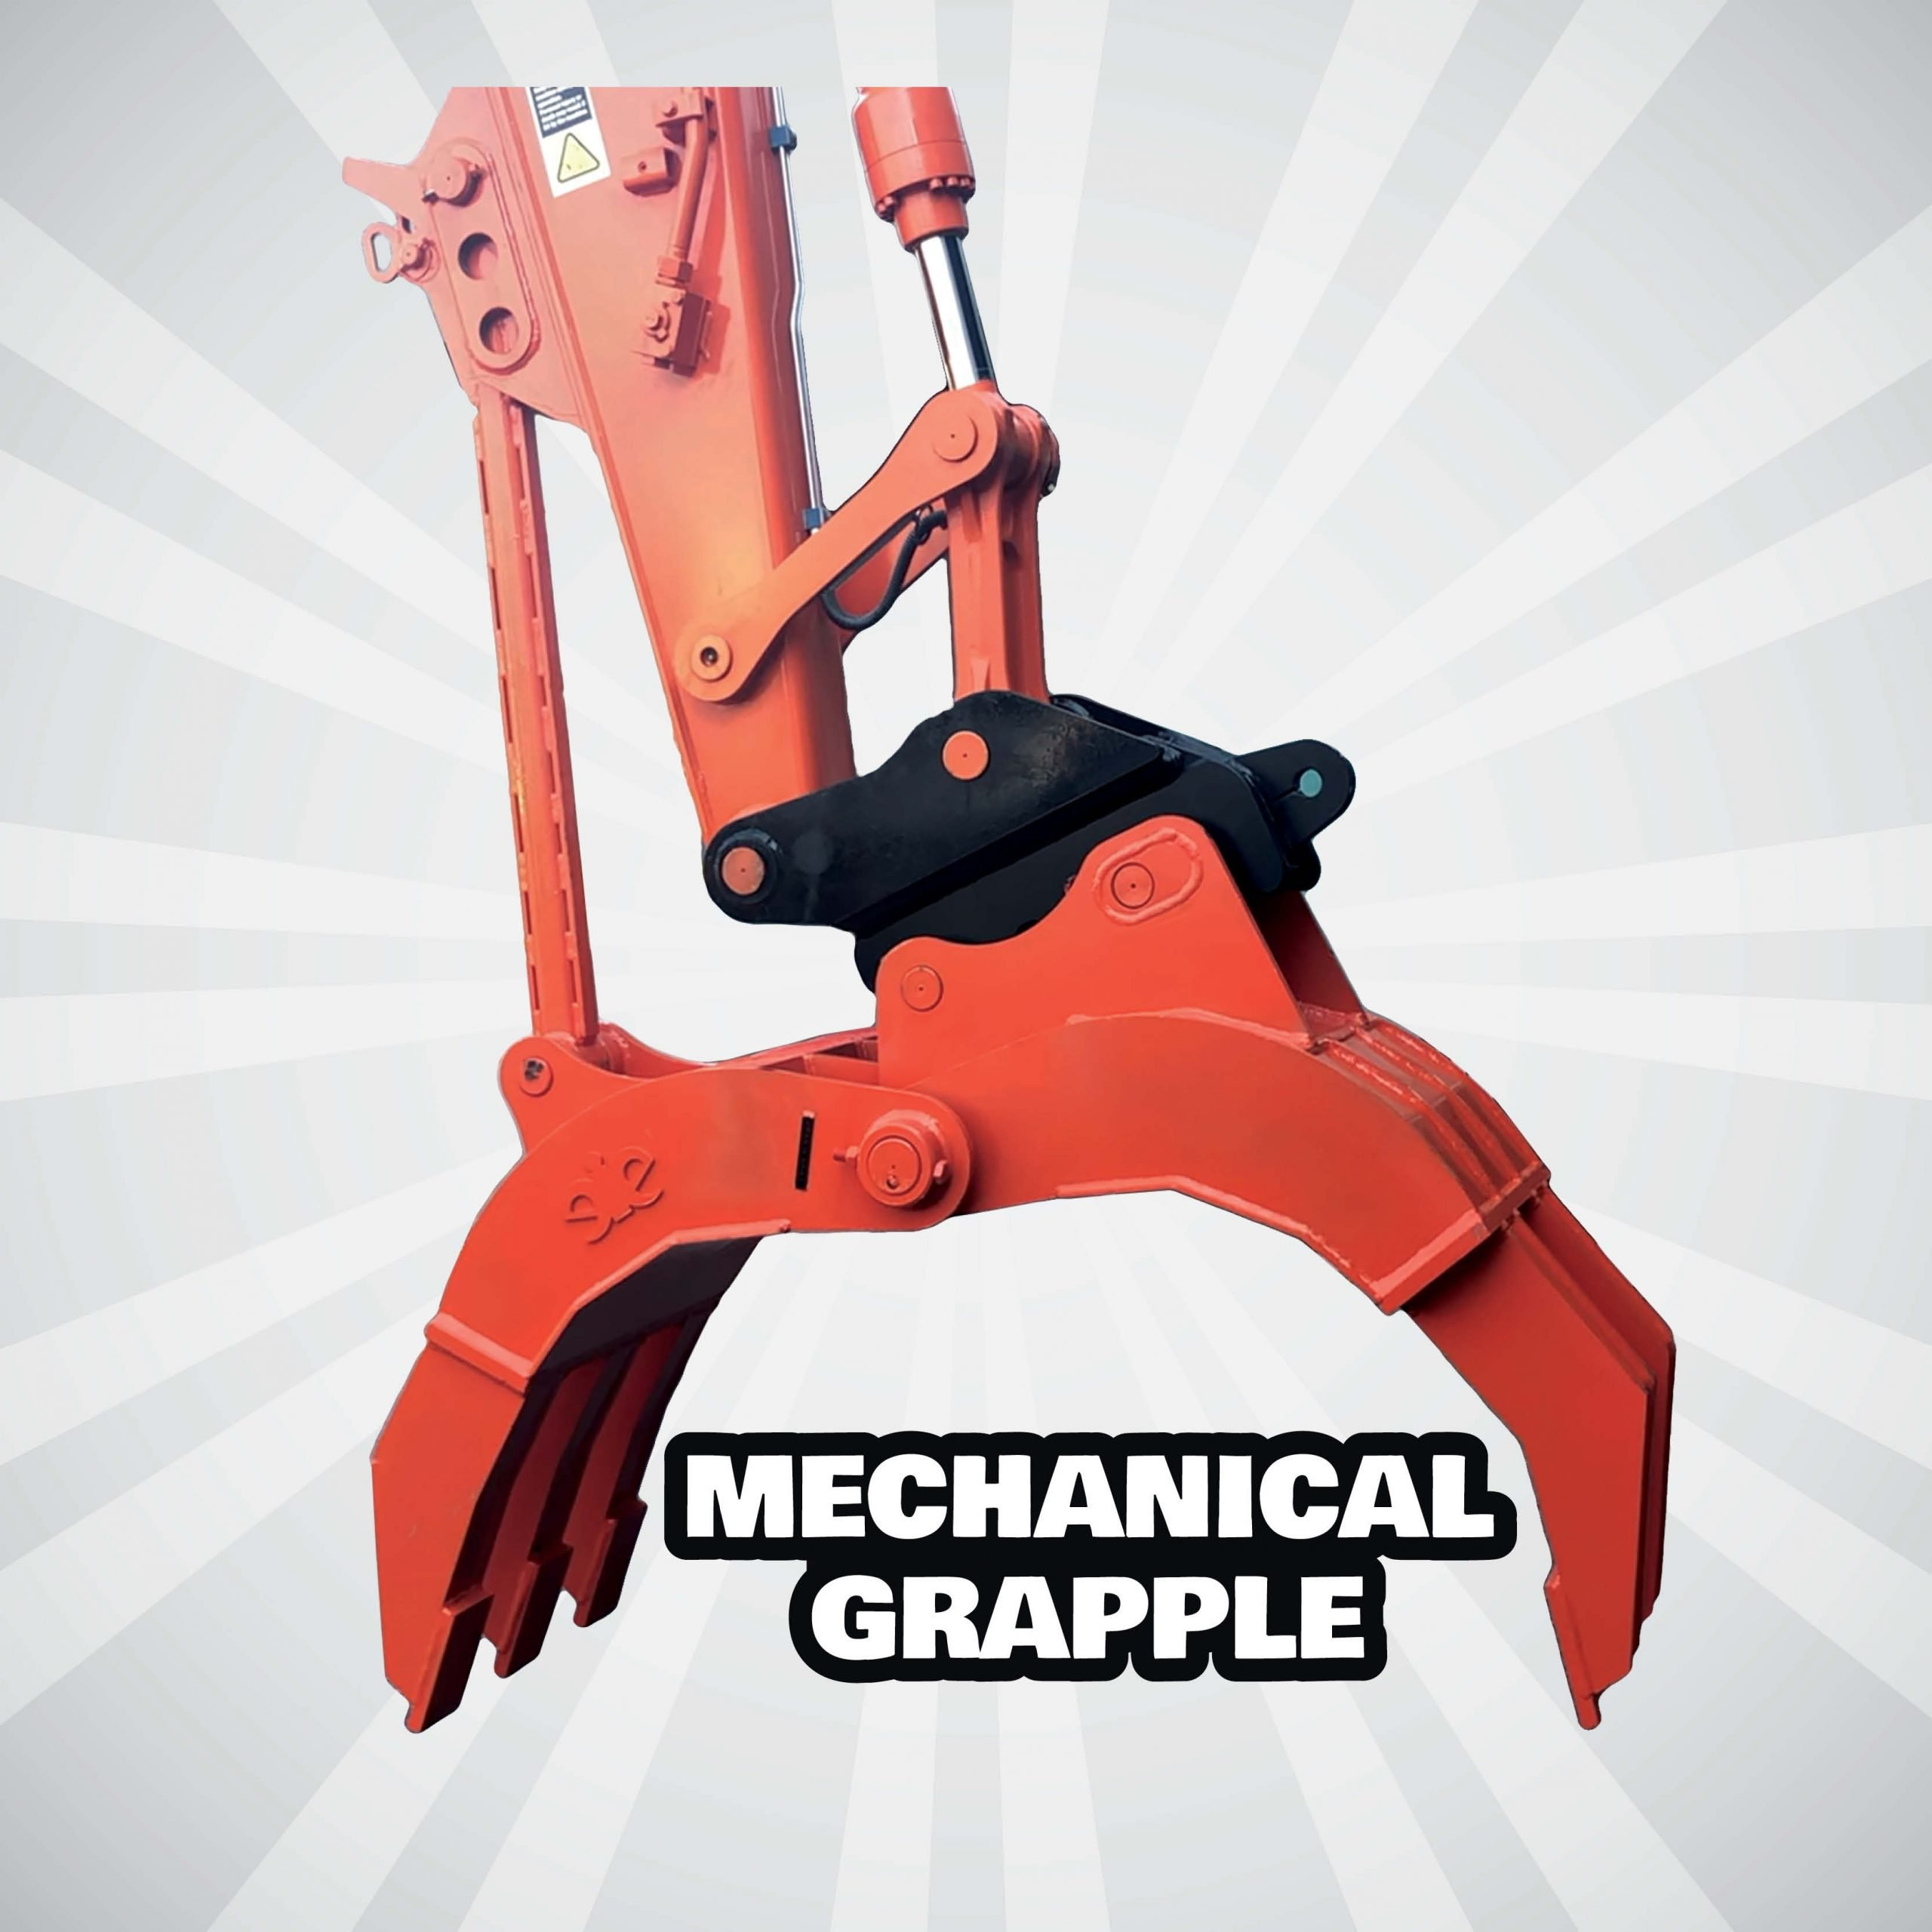 Mechanical Grapple